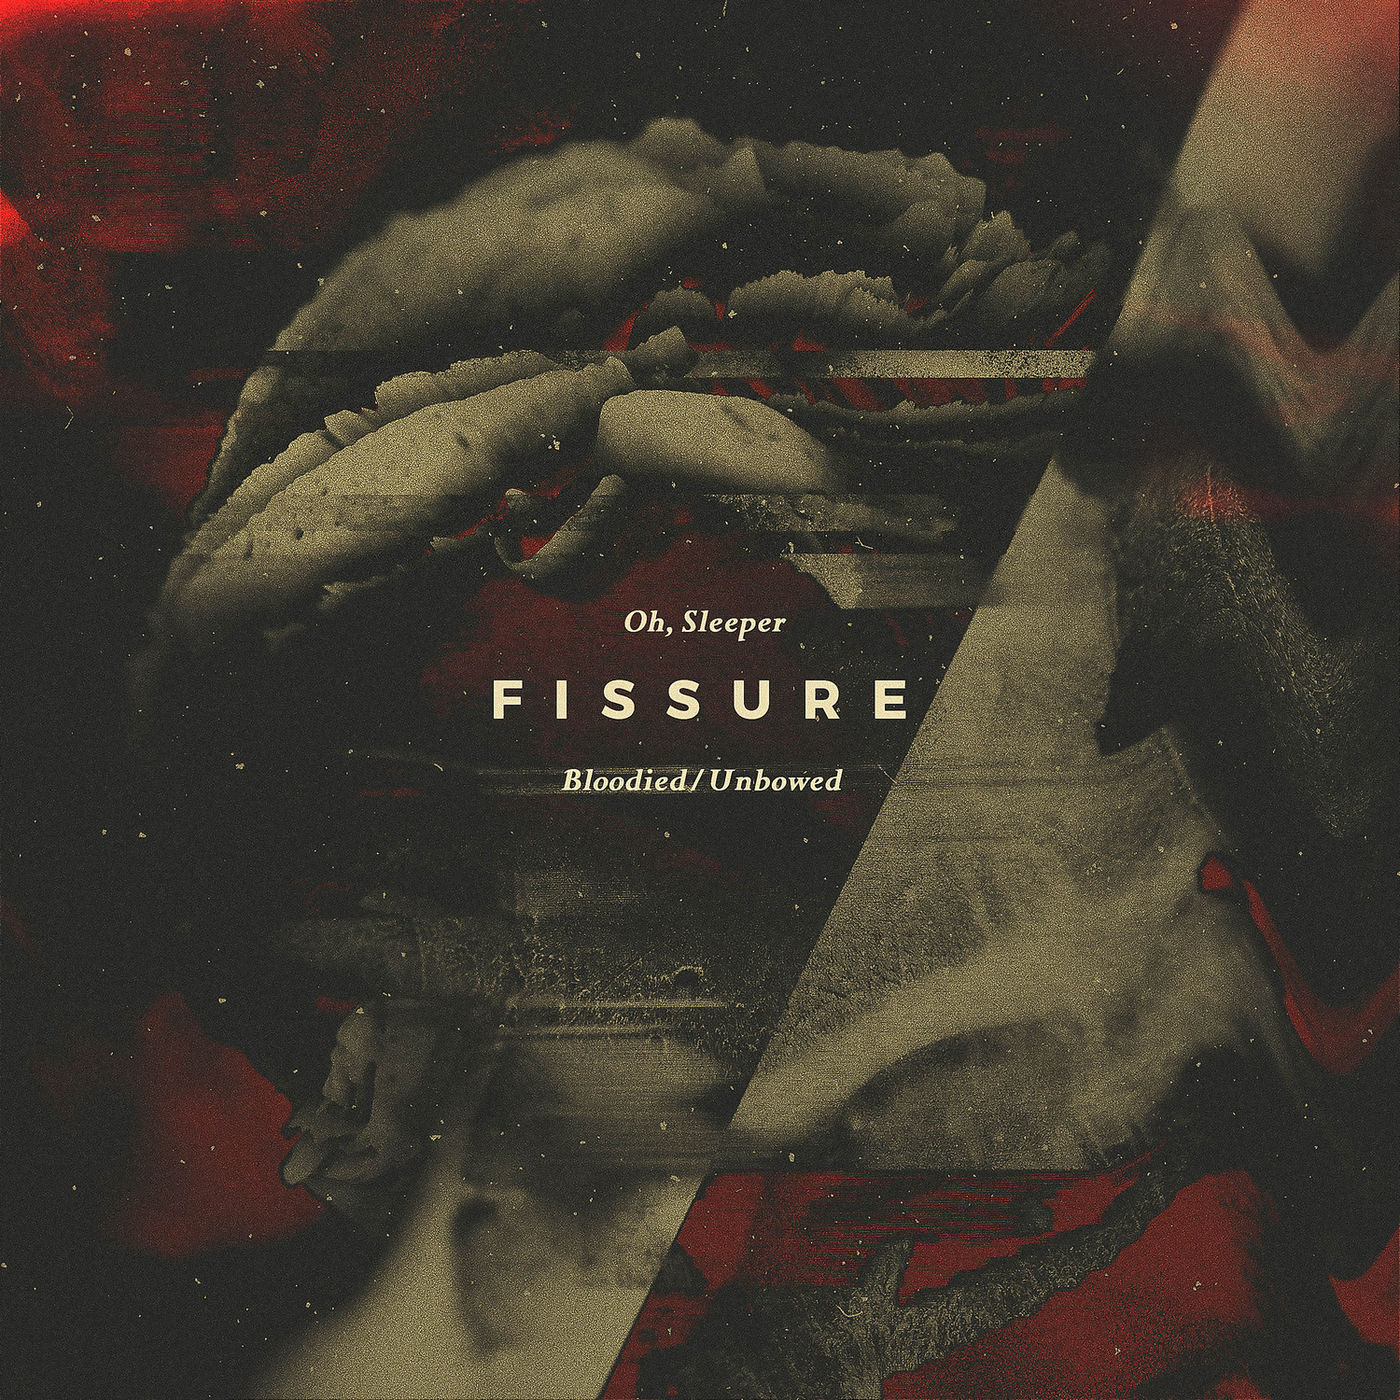 Oh, Sleeper - Fissure [single] (2019)